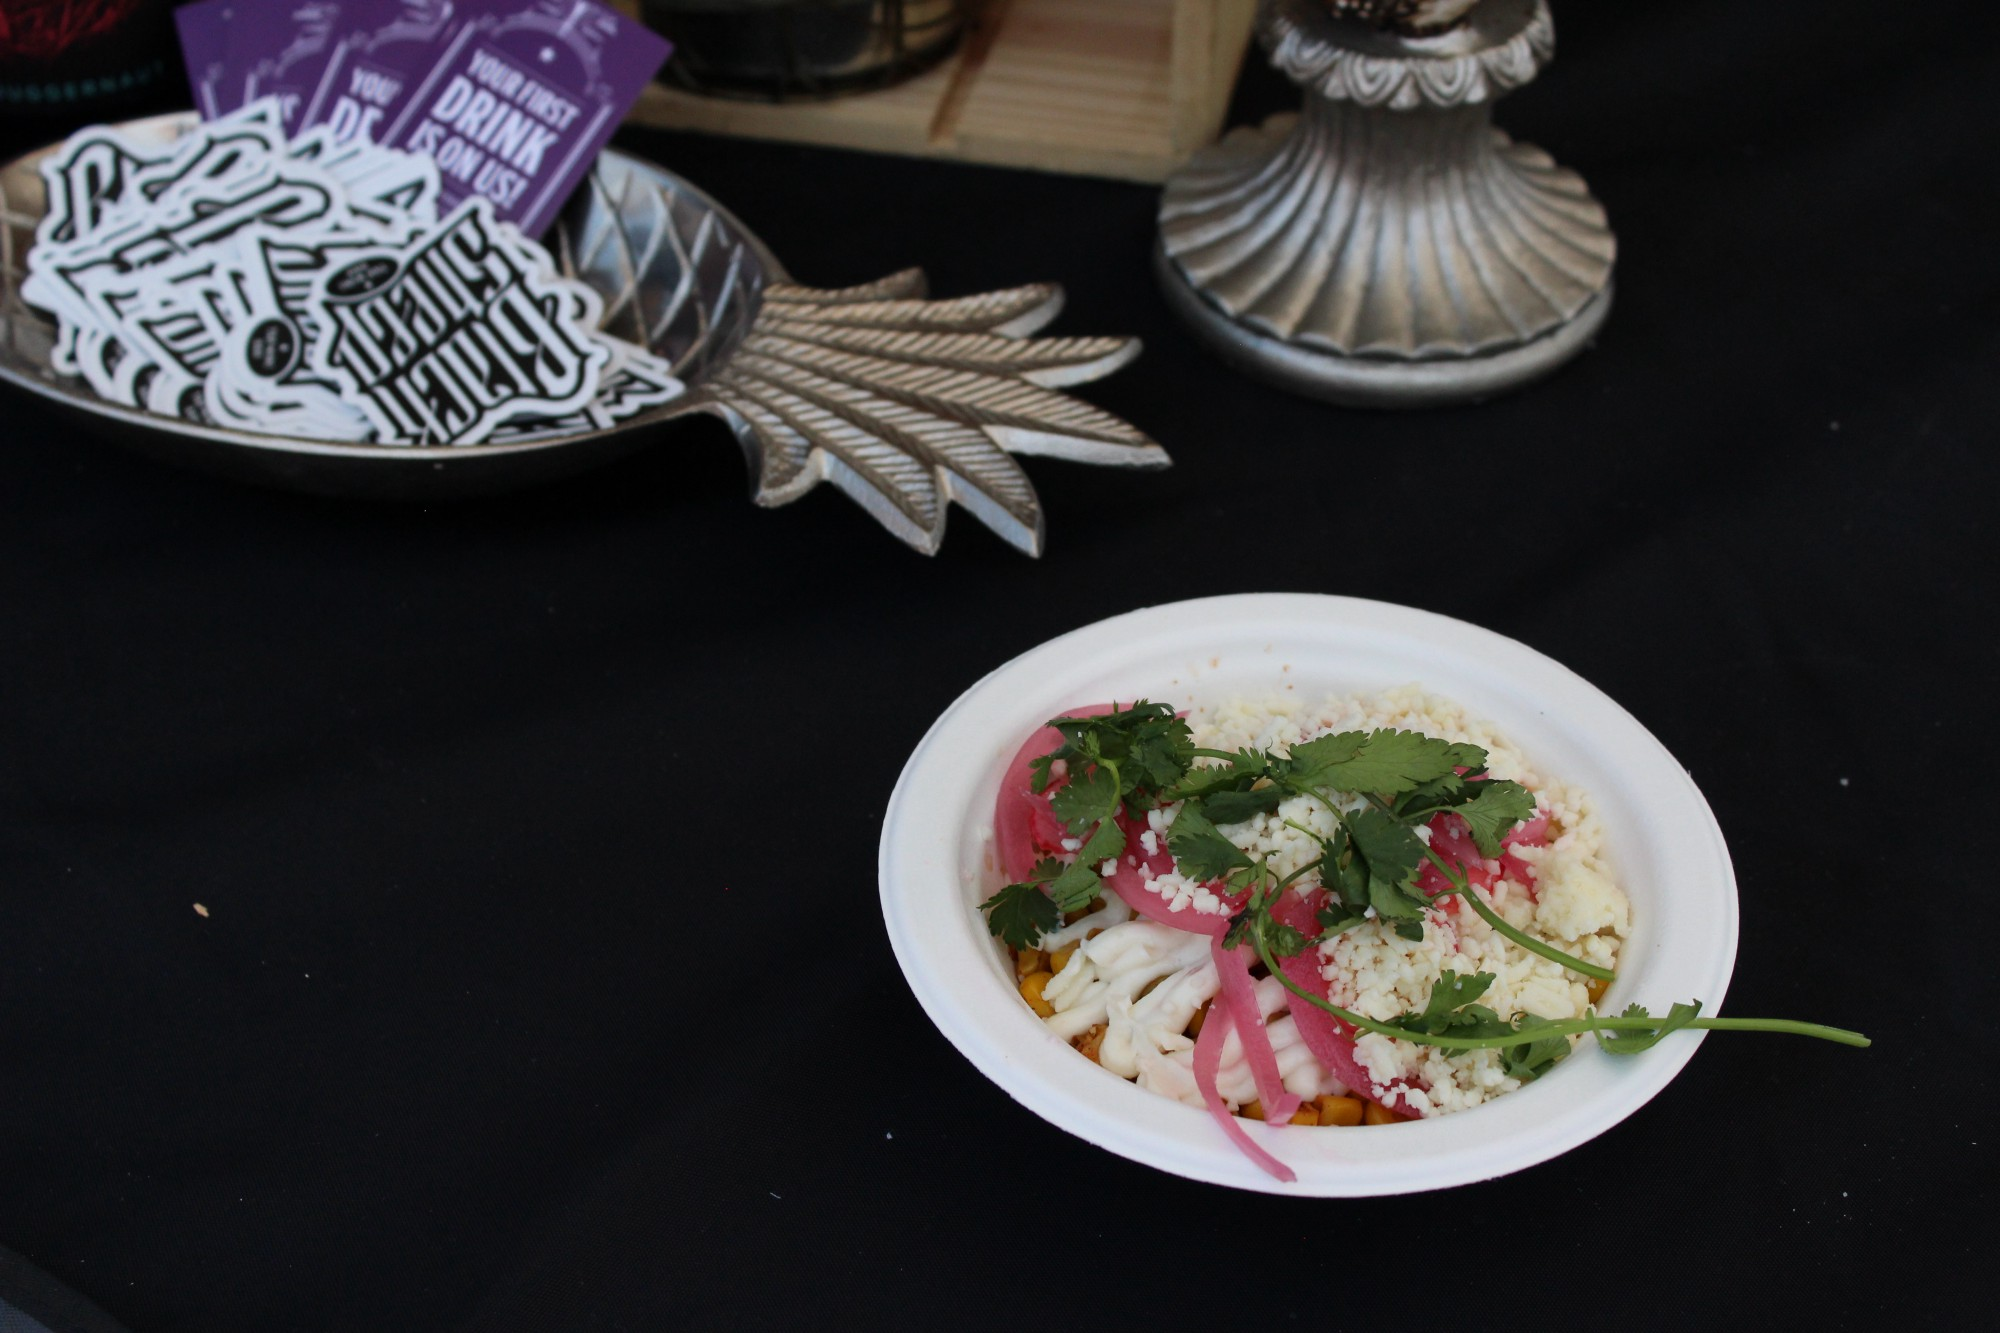 Dish from Black Sheep MKE: Charred Corn with pickled onions, cotija cheese, picante sauce and a garlic crema.